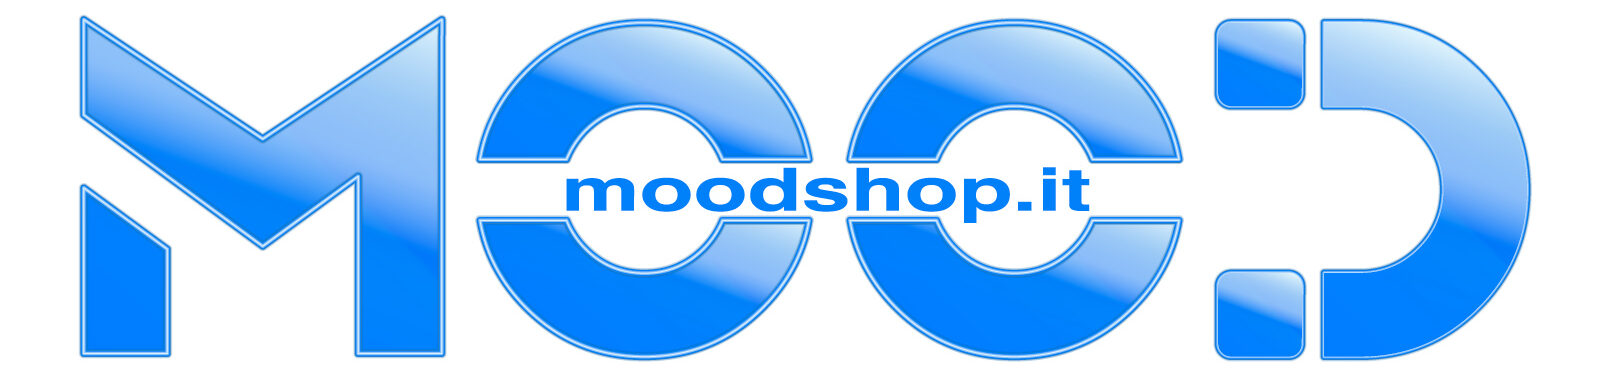 Moodshop.it